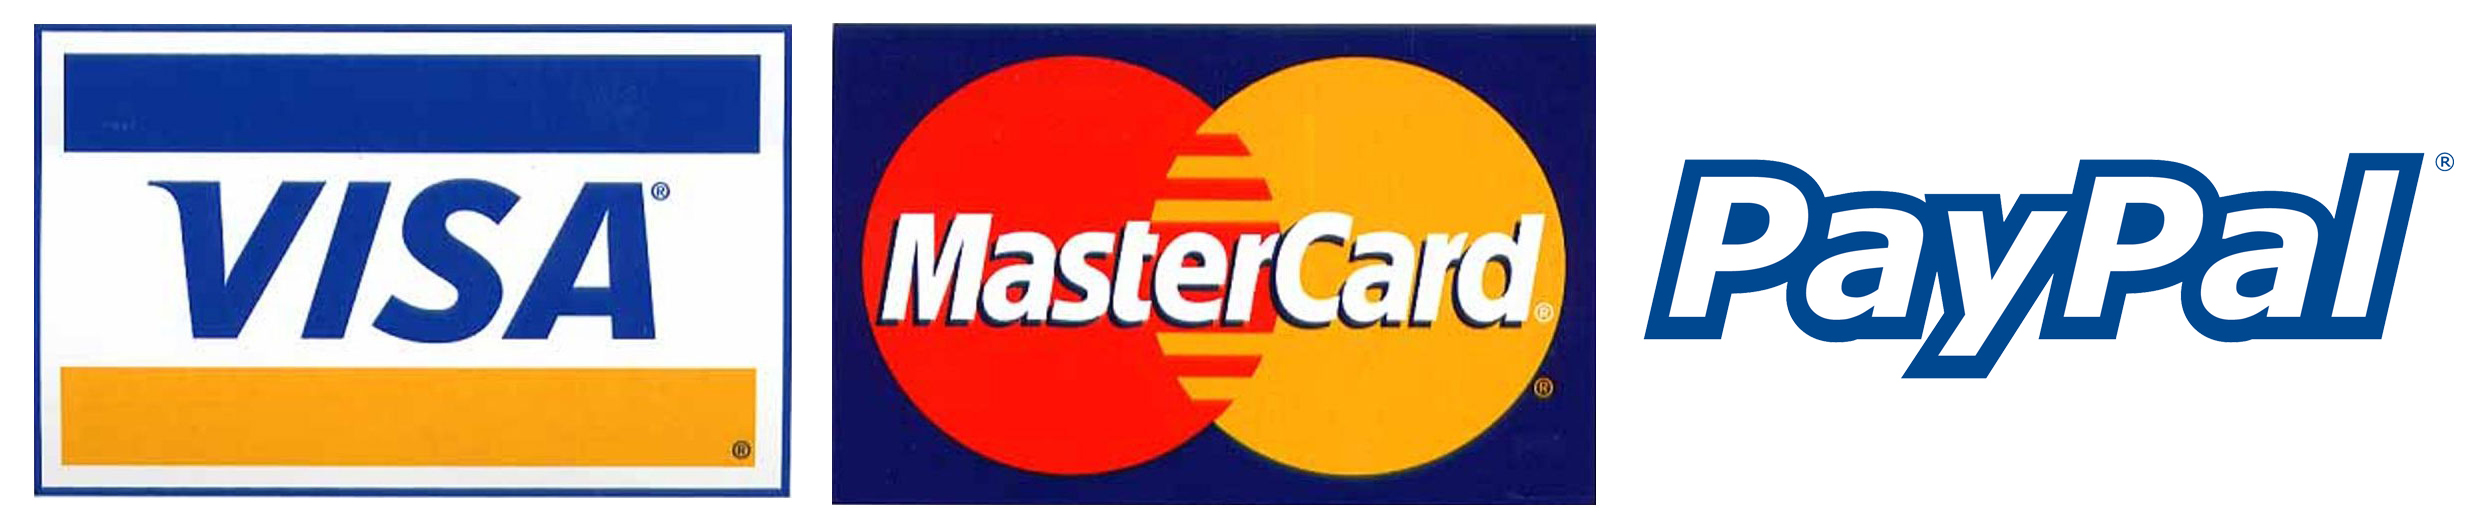 Visa Mastercard and Paypal